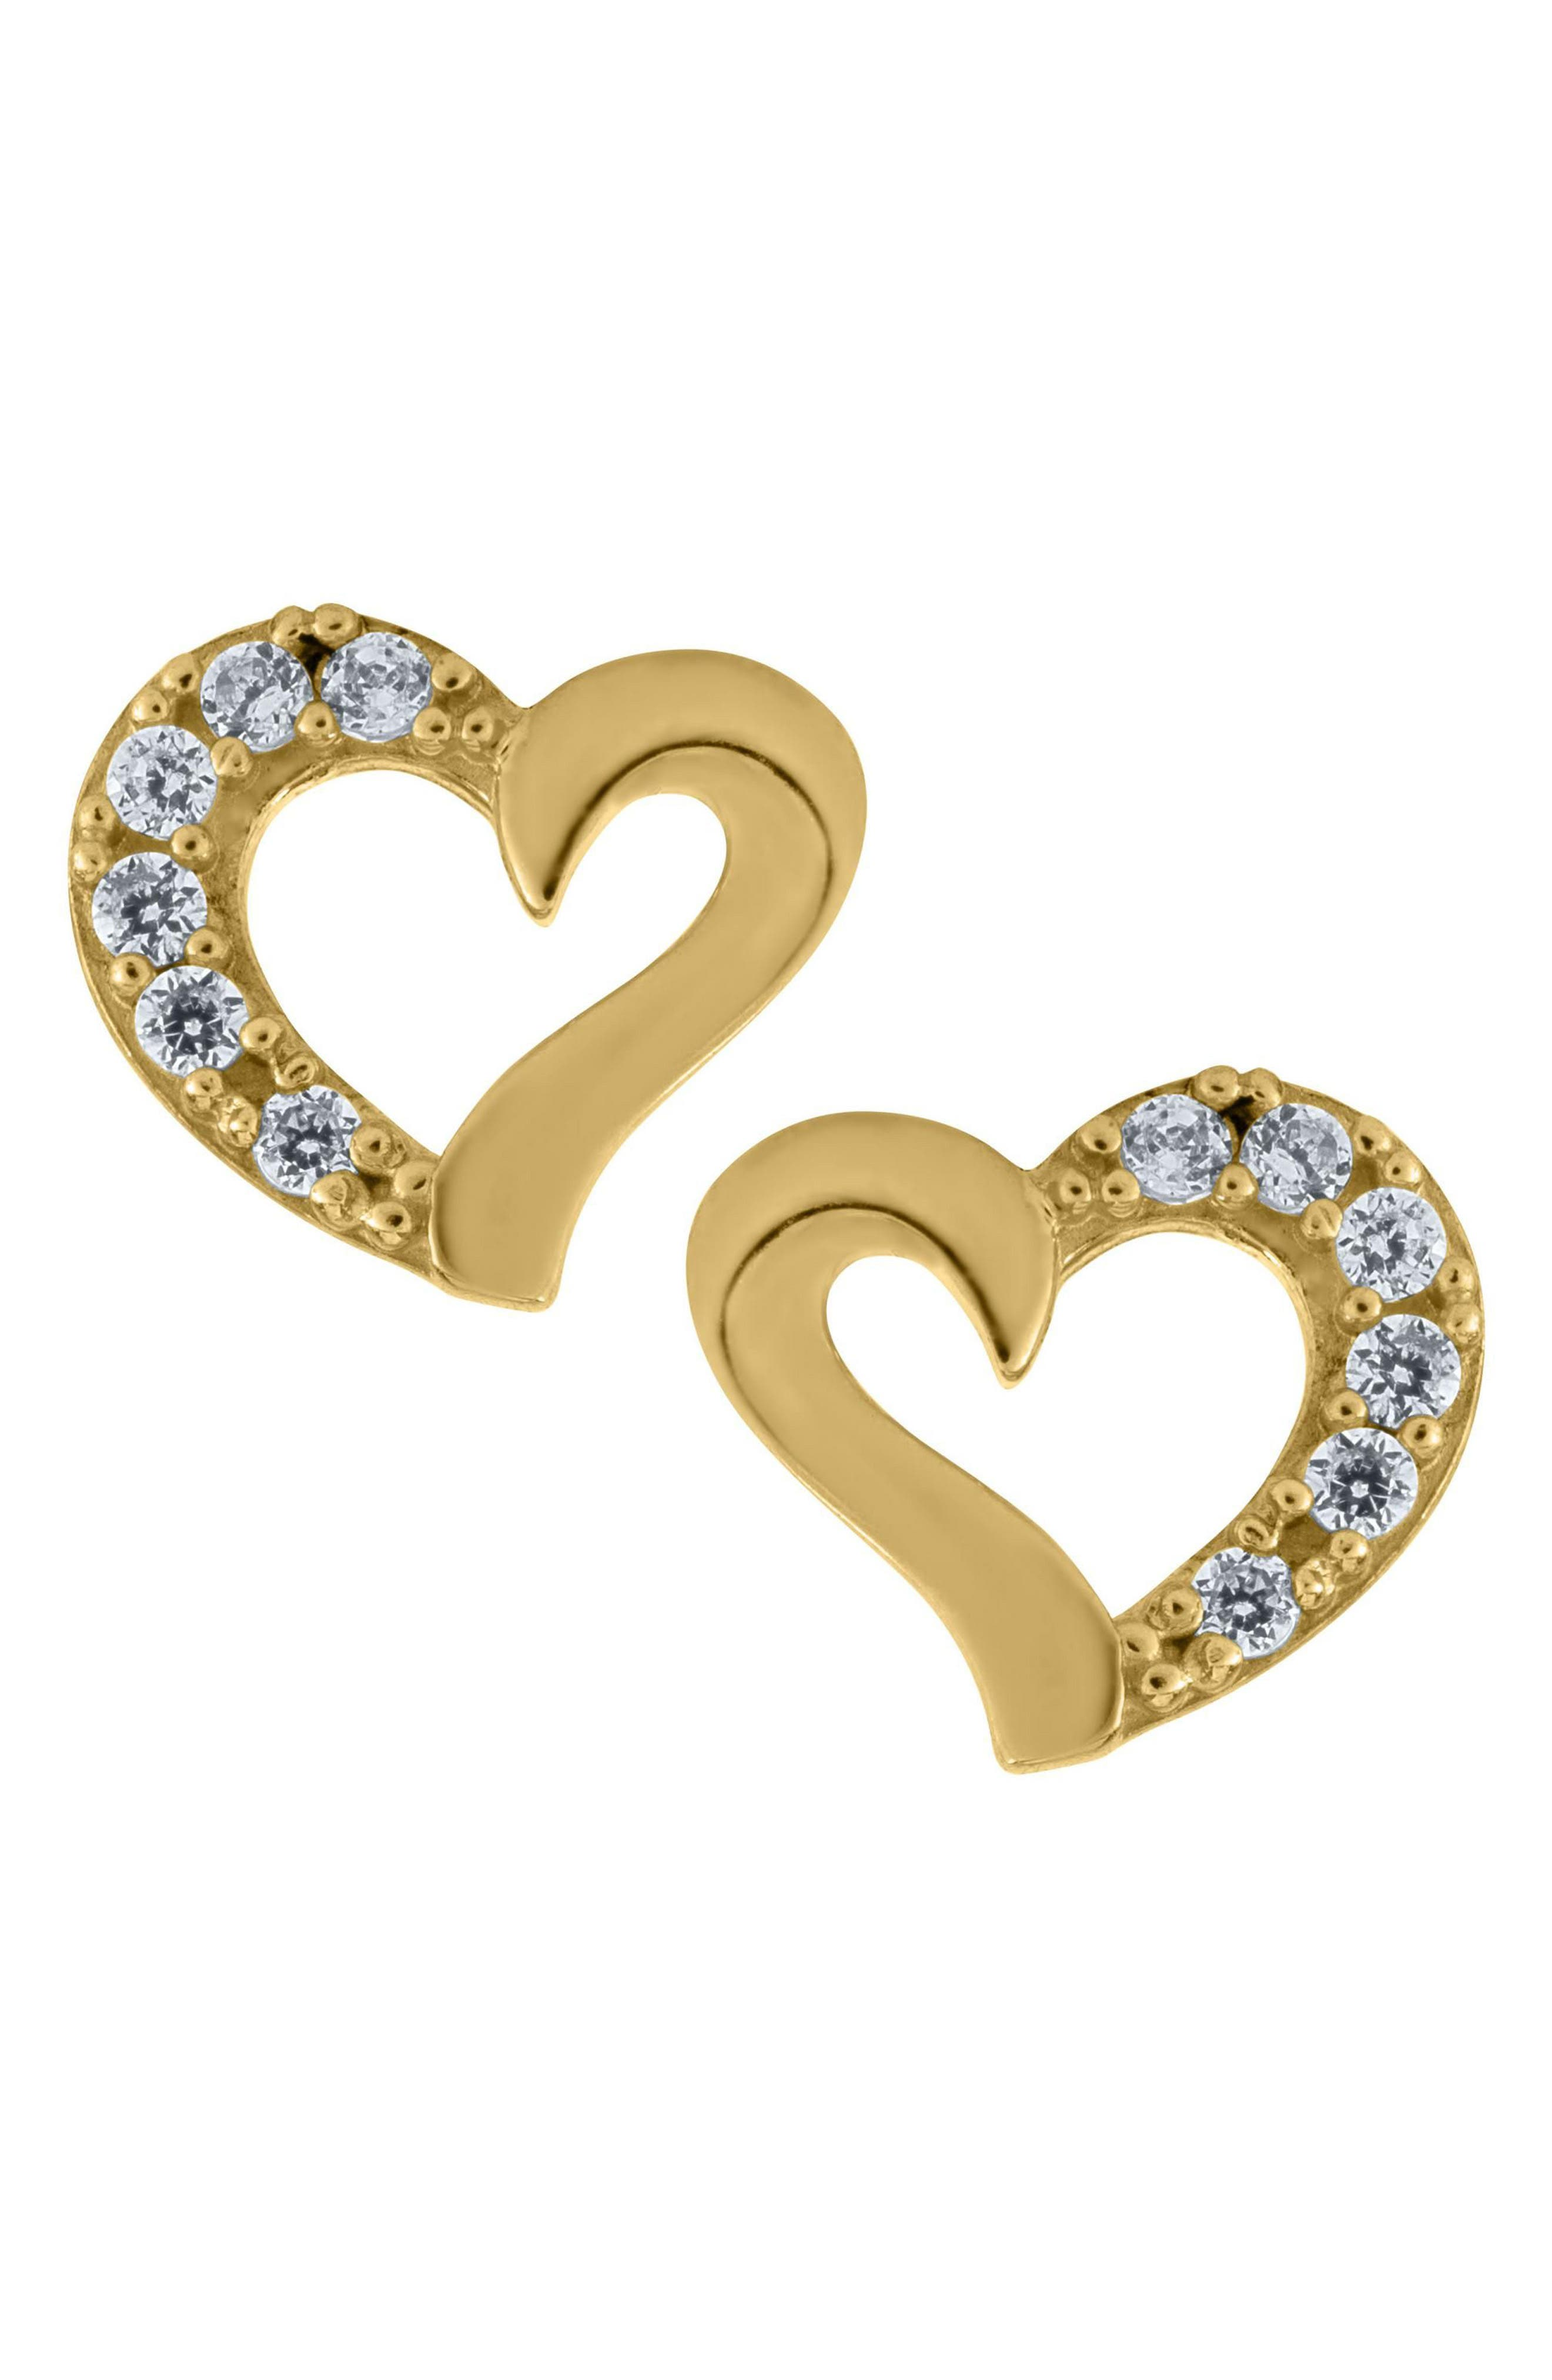 Main Image - Mignonette 14k Gold Heart Earrings (Girls)